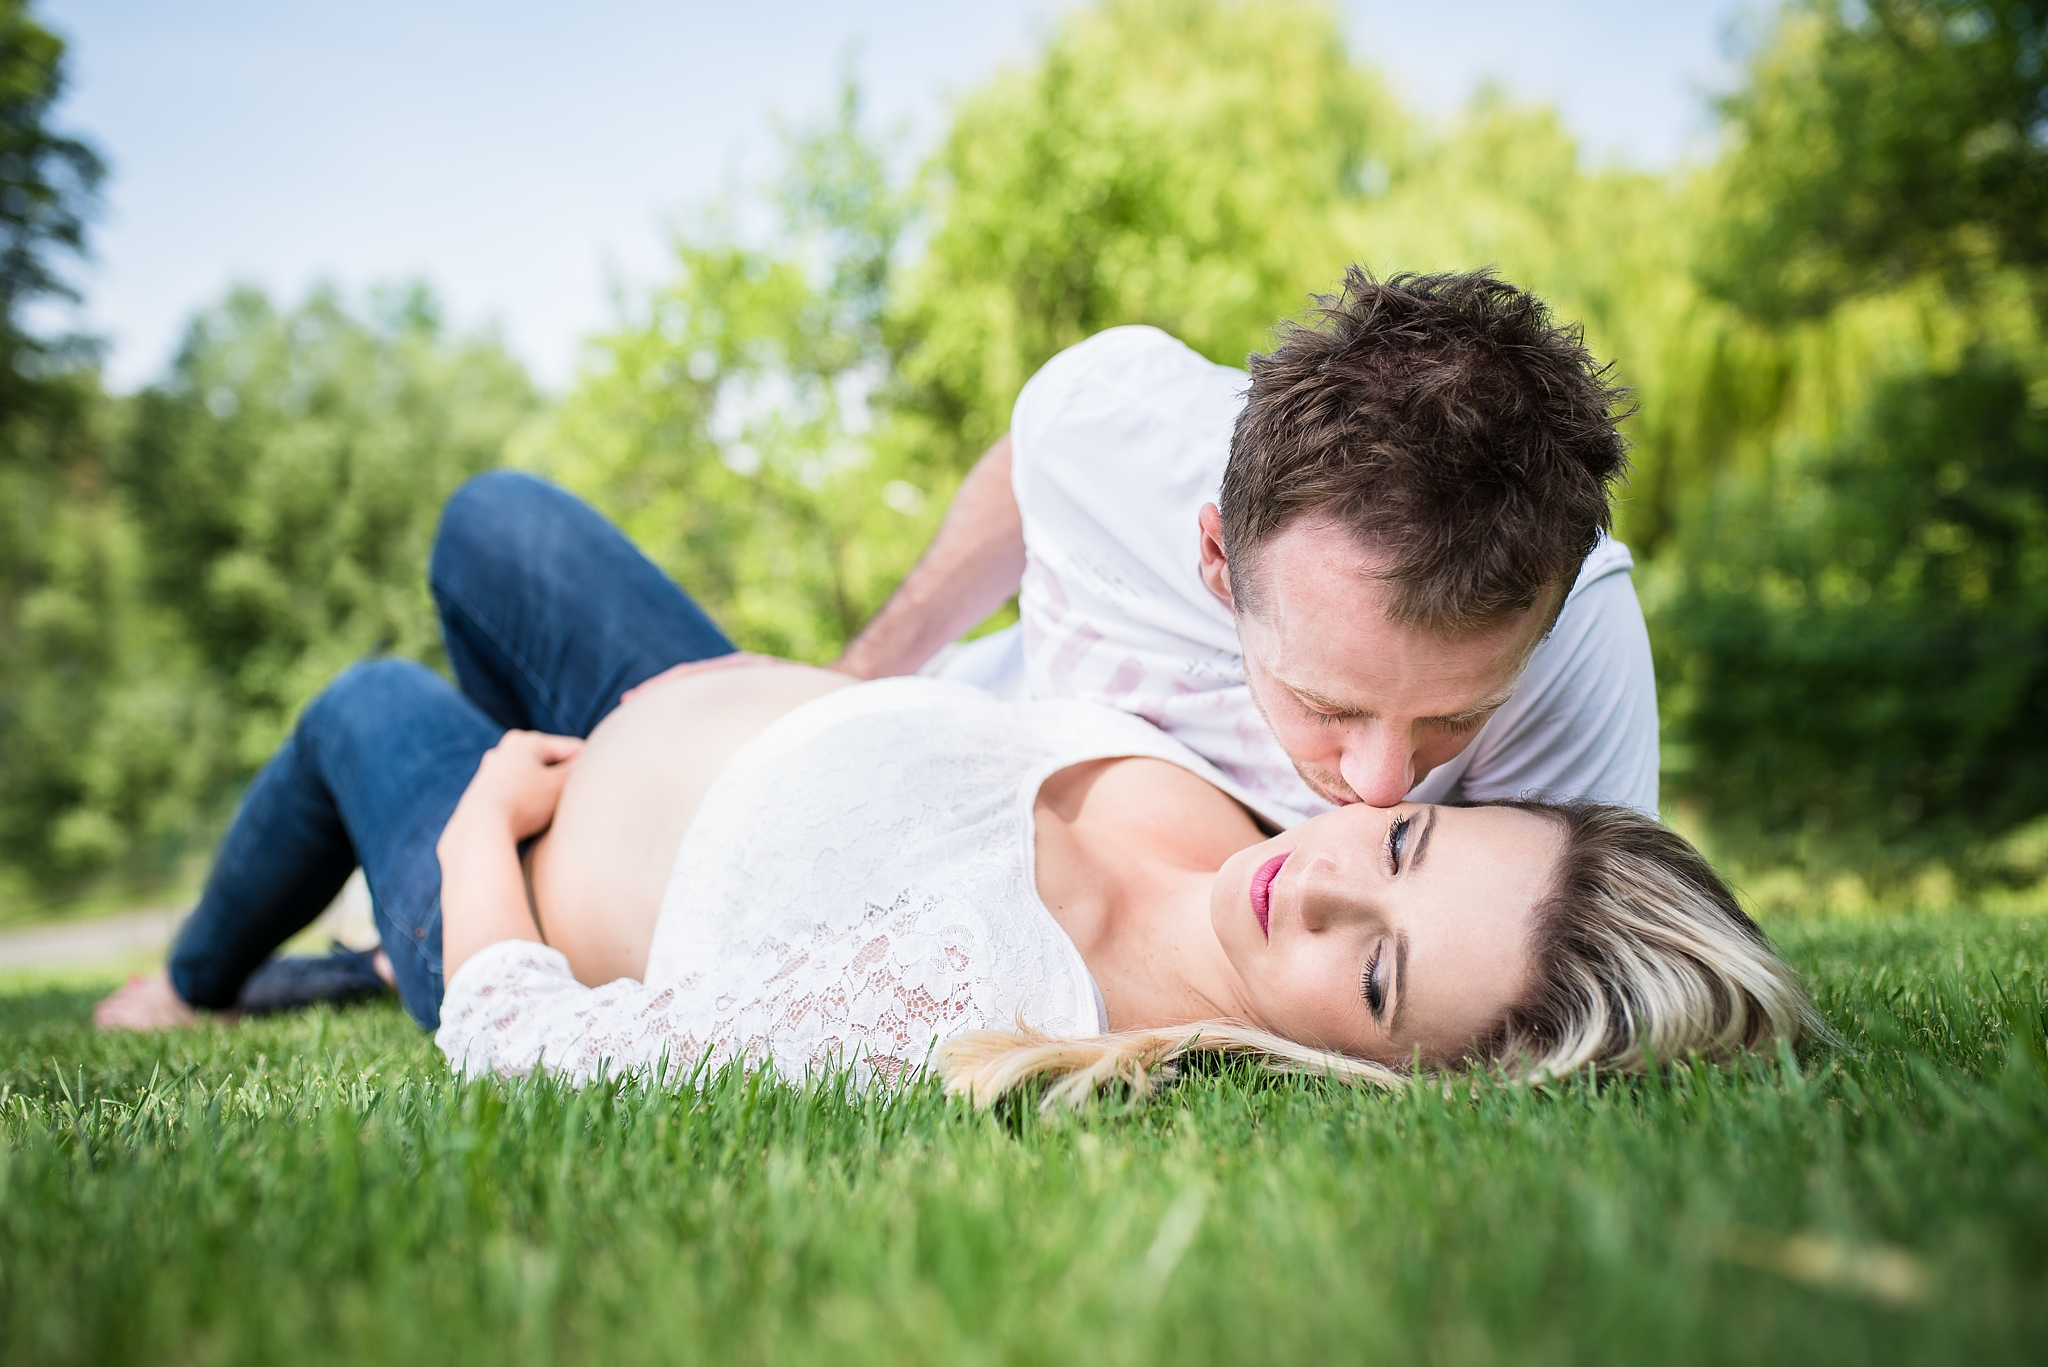 How to Do a Maternity Photoshoot - Plan, Choose the Right Poses, and Get the Whole Family Involved